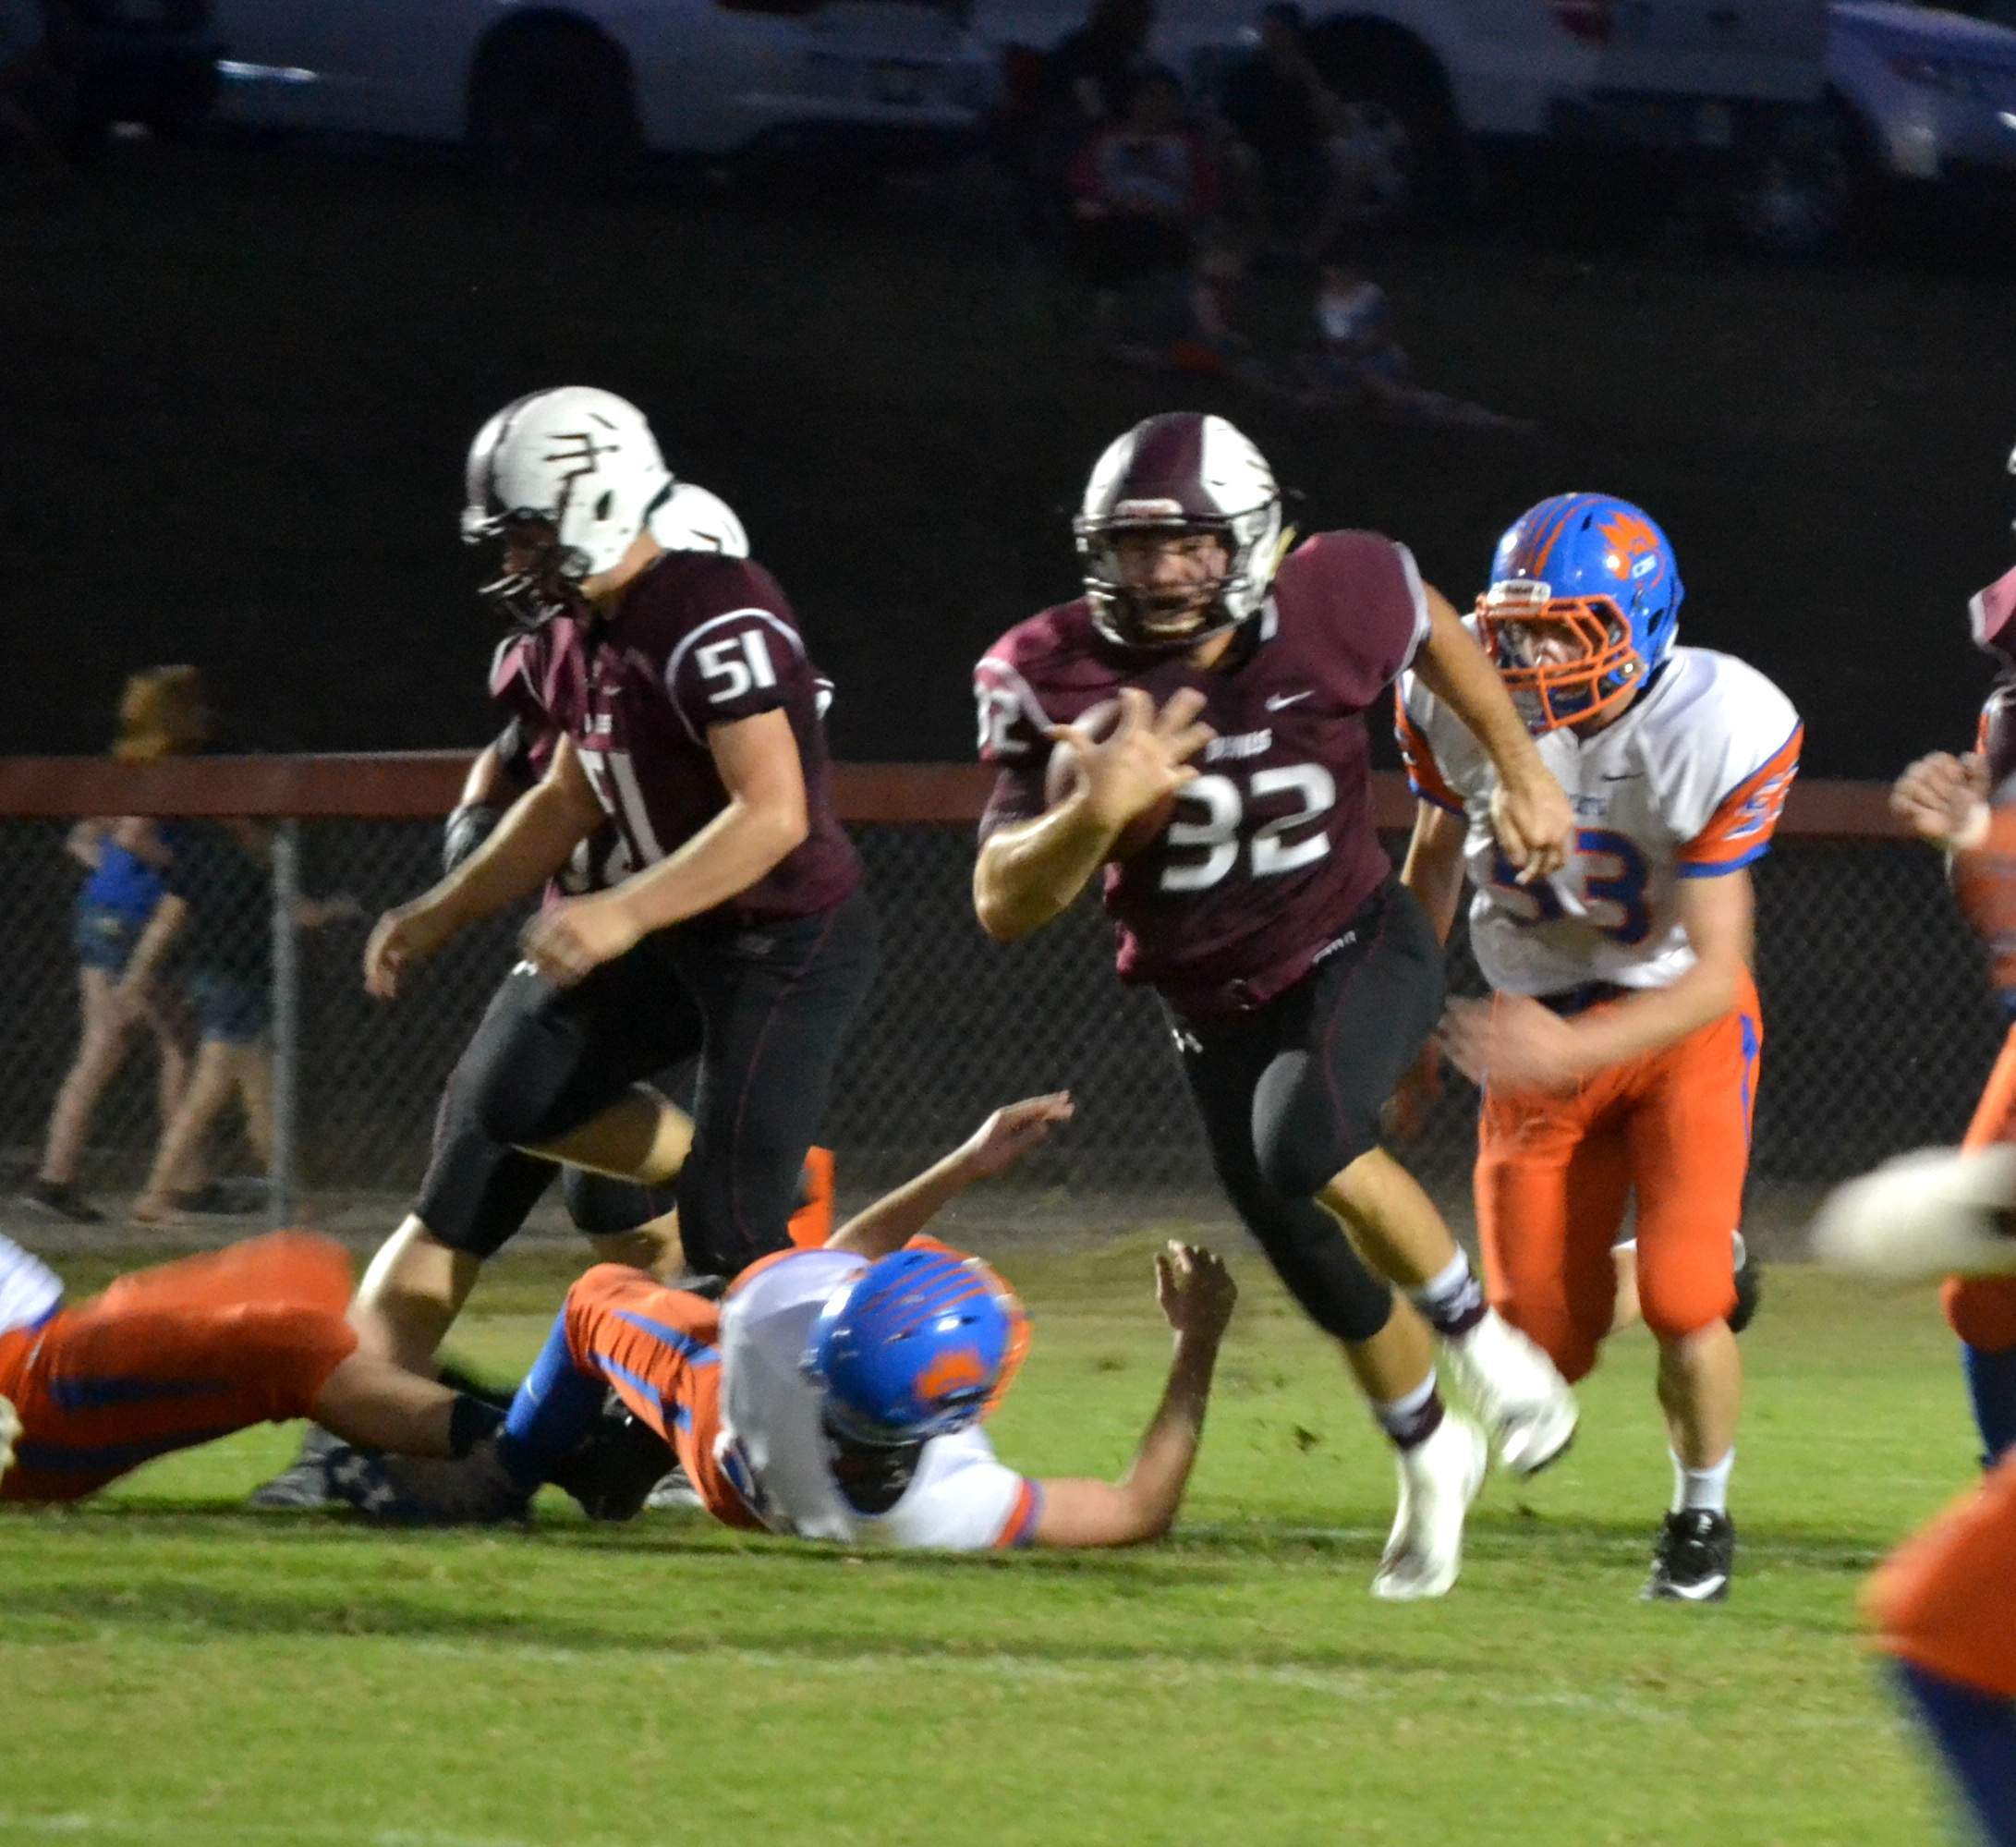 S-V-W-W's Peyton Rock finds a hole during Friday's action at Carroll Kelly Field. Rock racked up 152 yards rushing and scored twice as the Red Devils blanked the Bearcats 66-0.